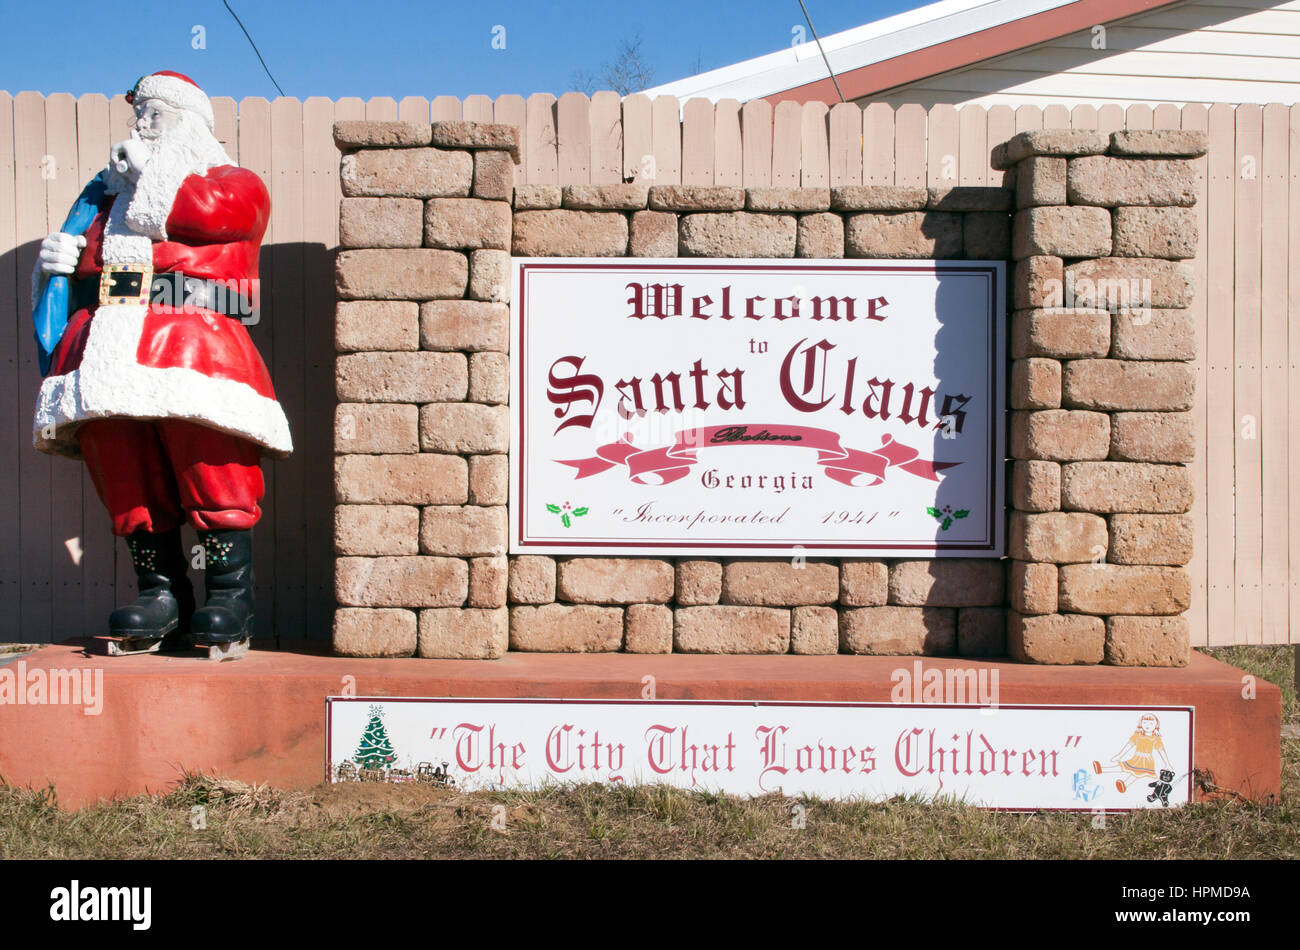 Welcome to Santa Claus Georgia sign - Stock Image